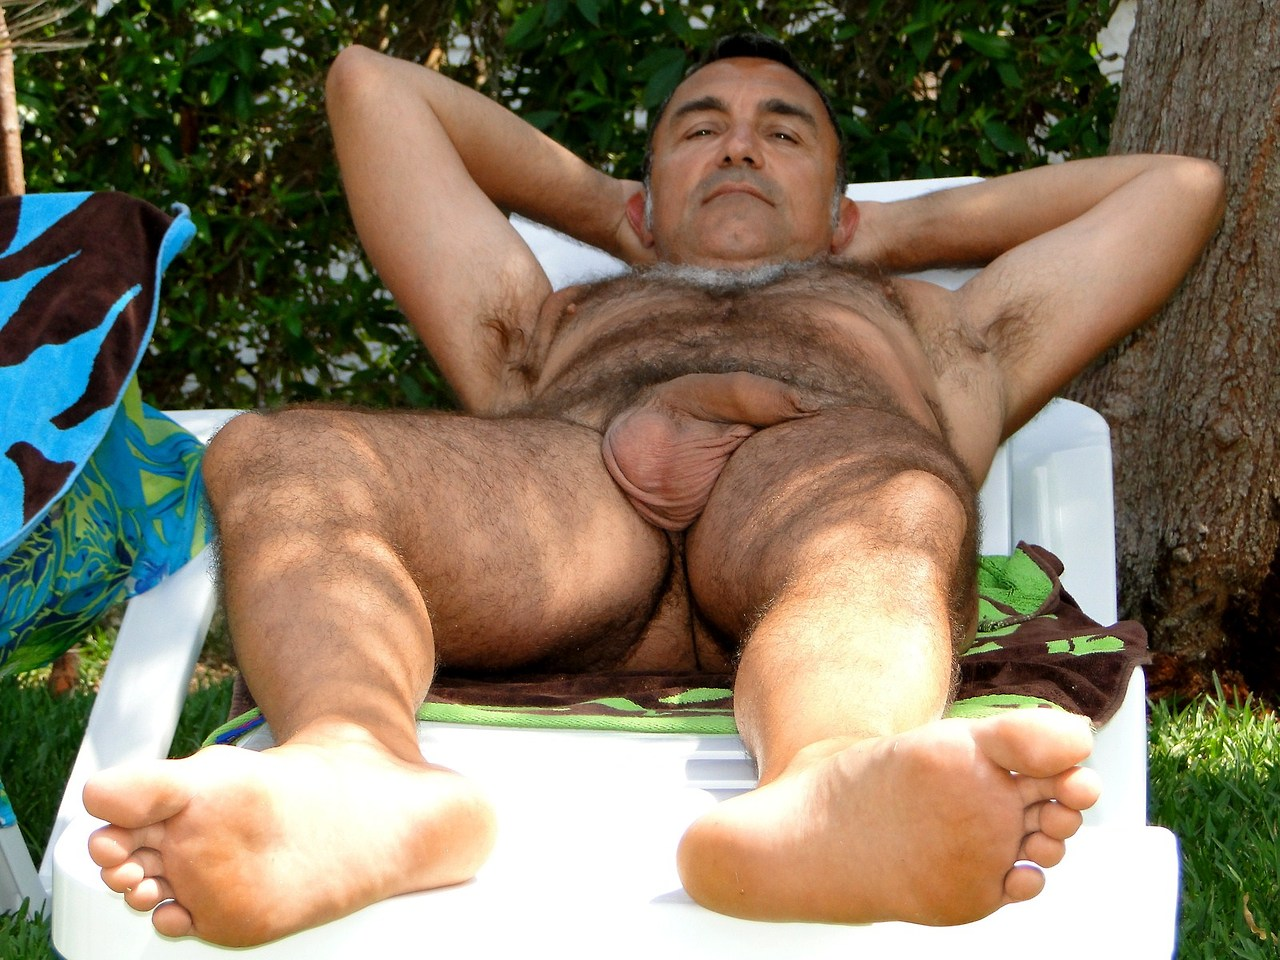 naked men - hairy naked men - sexy